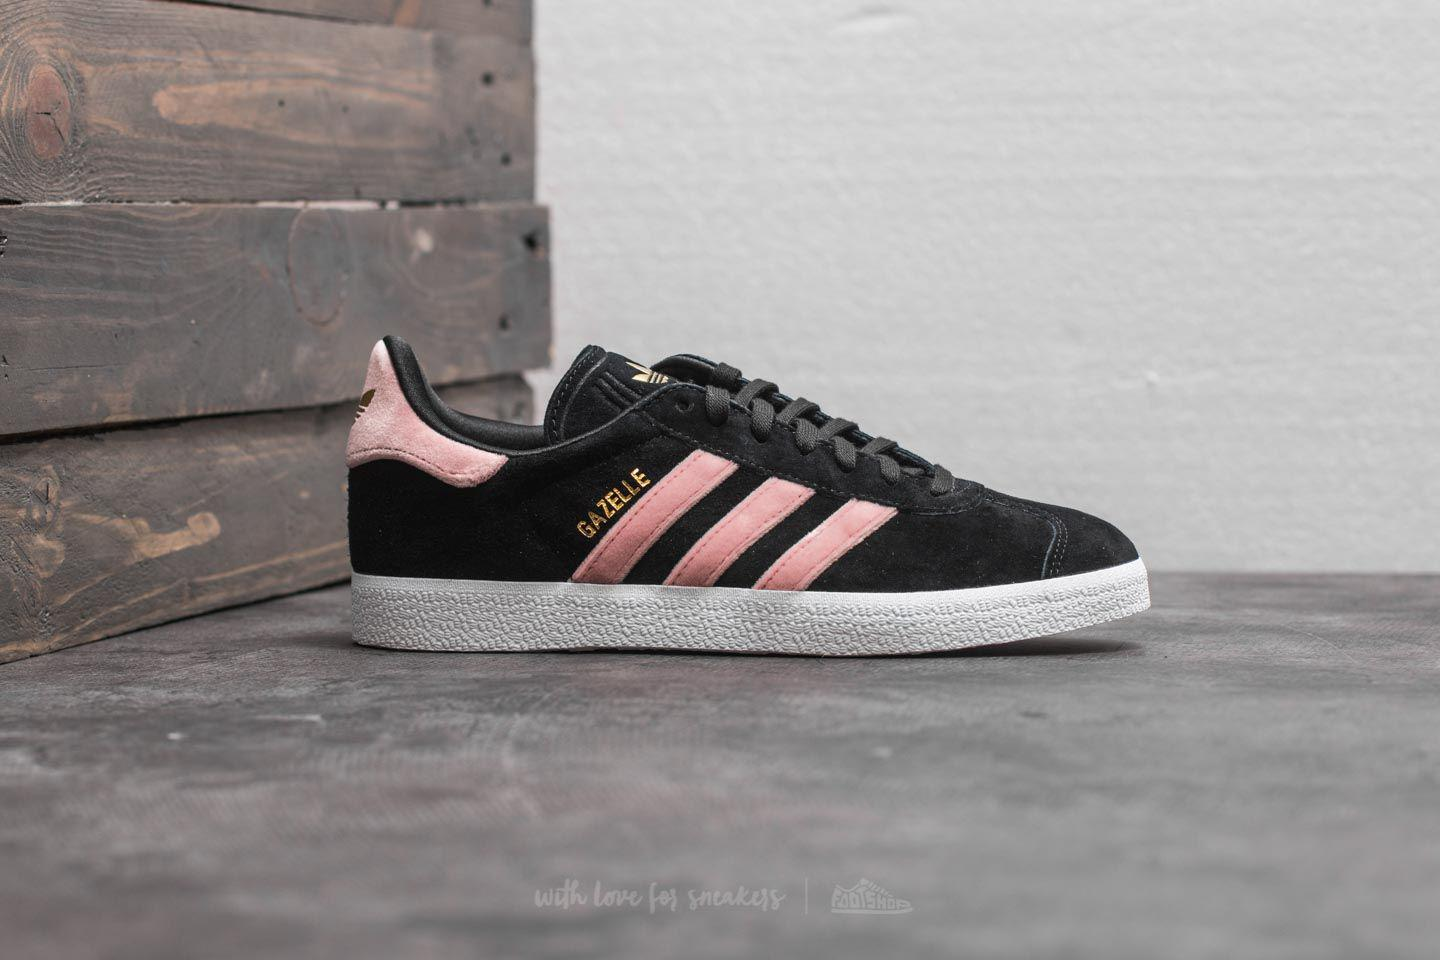 Lyst - adidas Originals Adidas Gazelle W Core Black  Raw Pink  Gold Foil 720ec6f1d